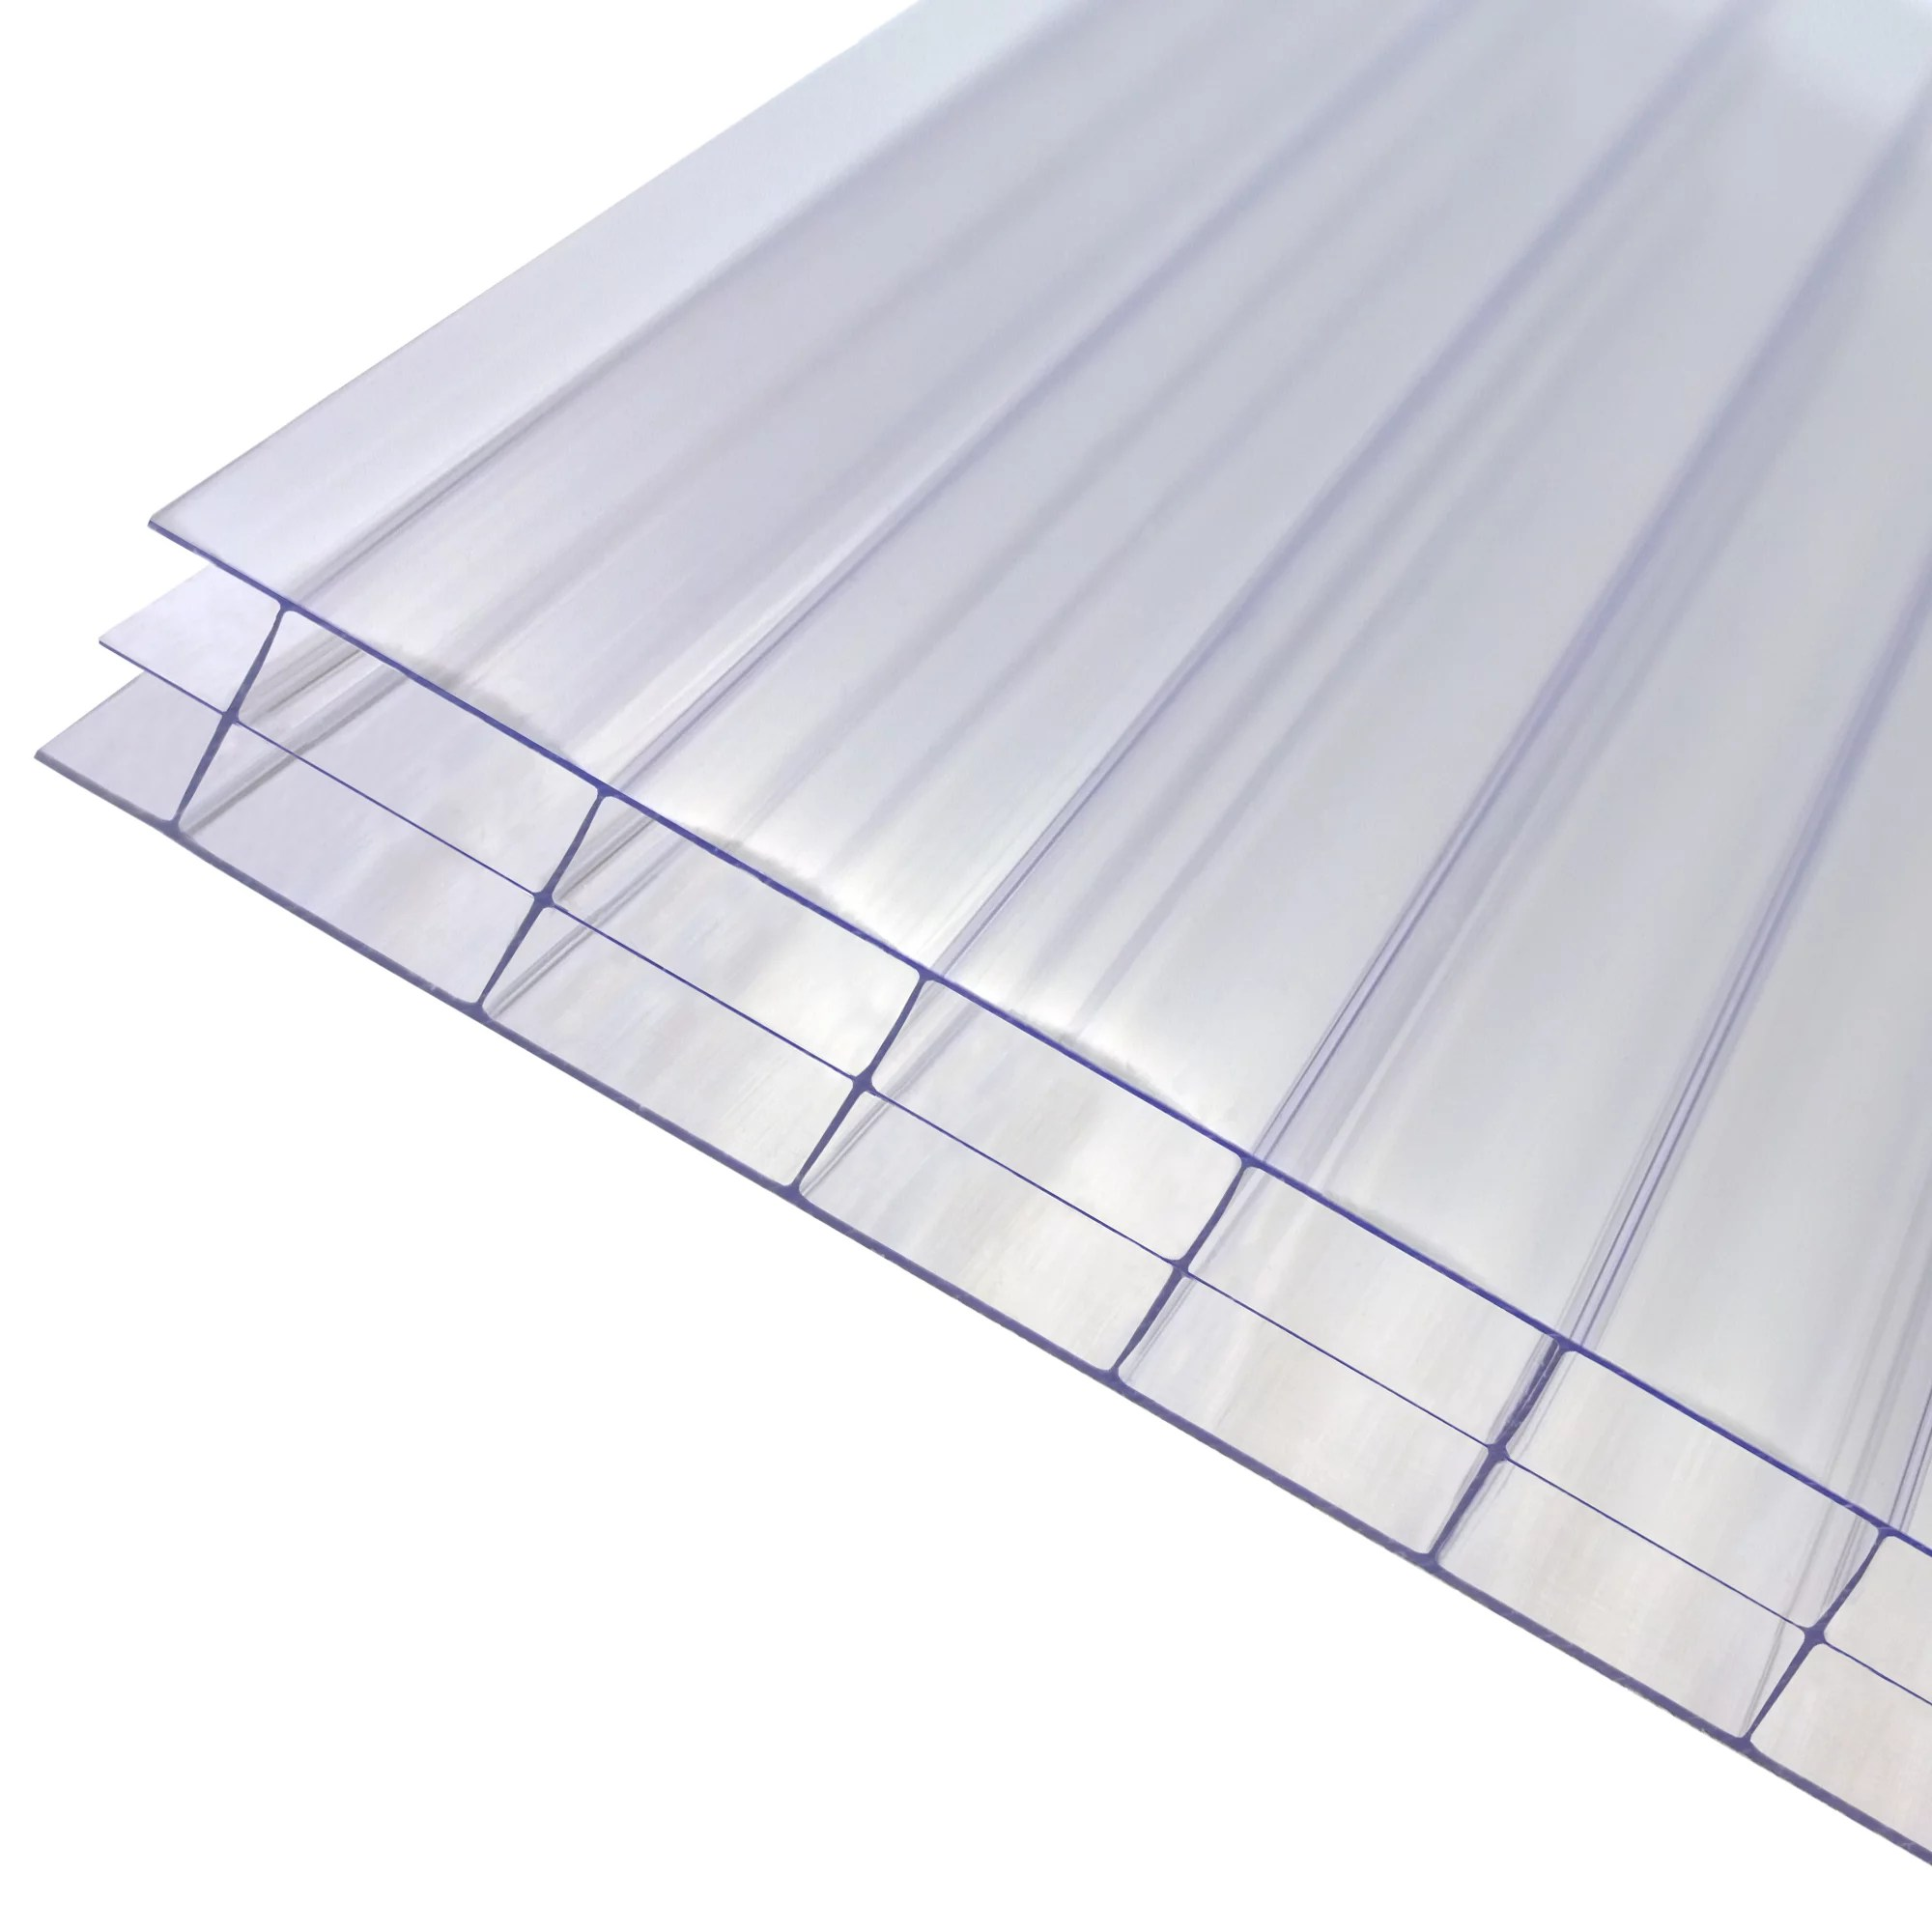 axiome clear polycarbonate multiwall roofing sheet l 3m w 1000mm t 16mm